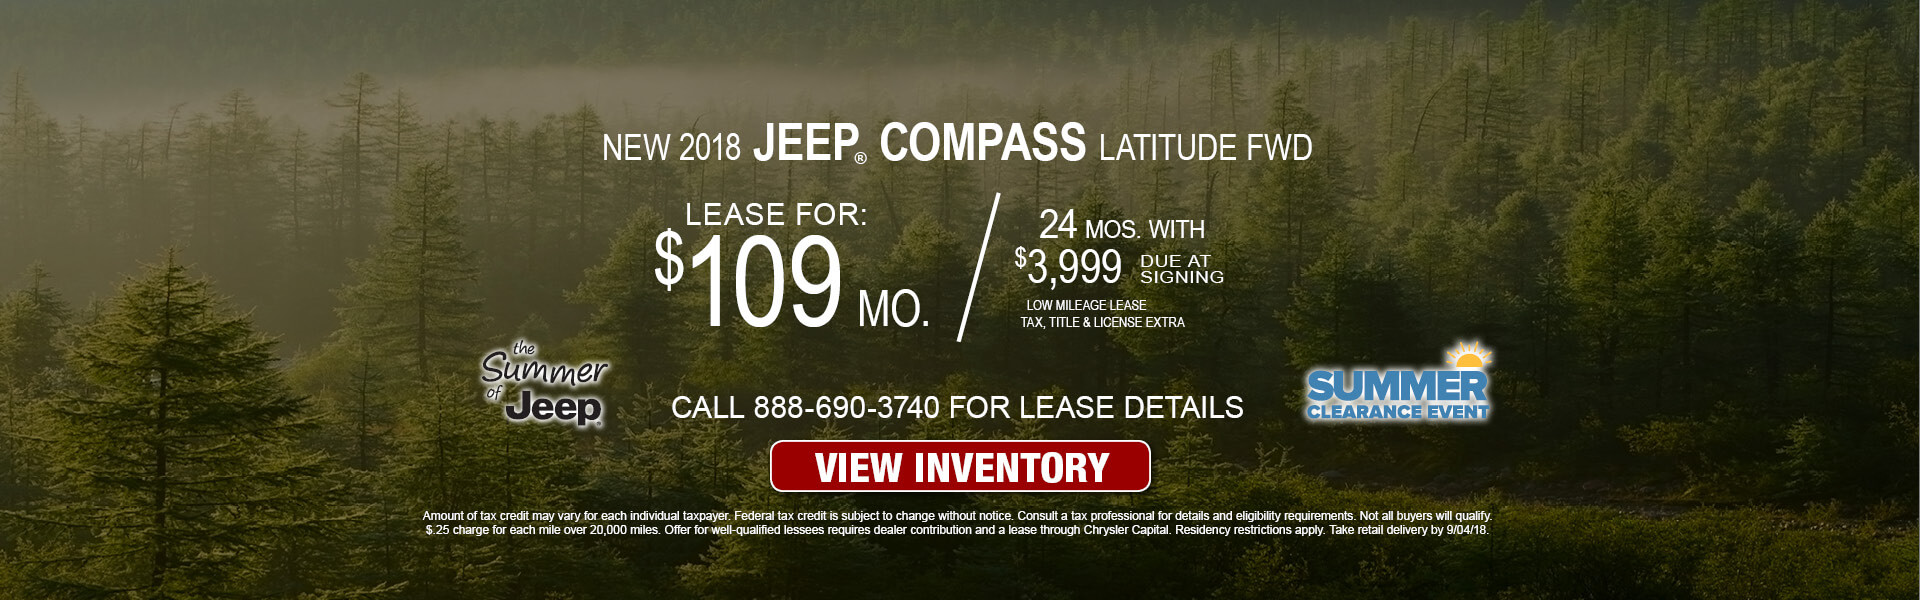 Jeep Grand Compass $109 Lease